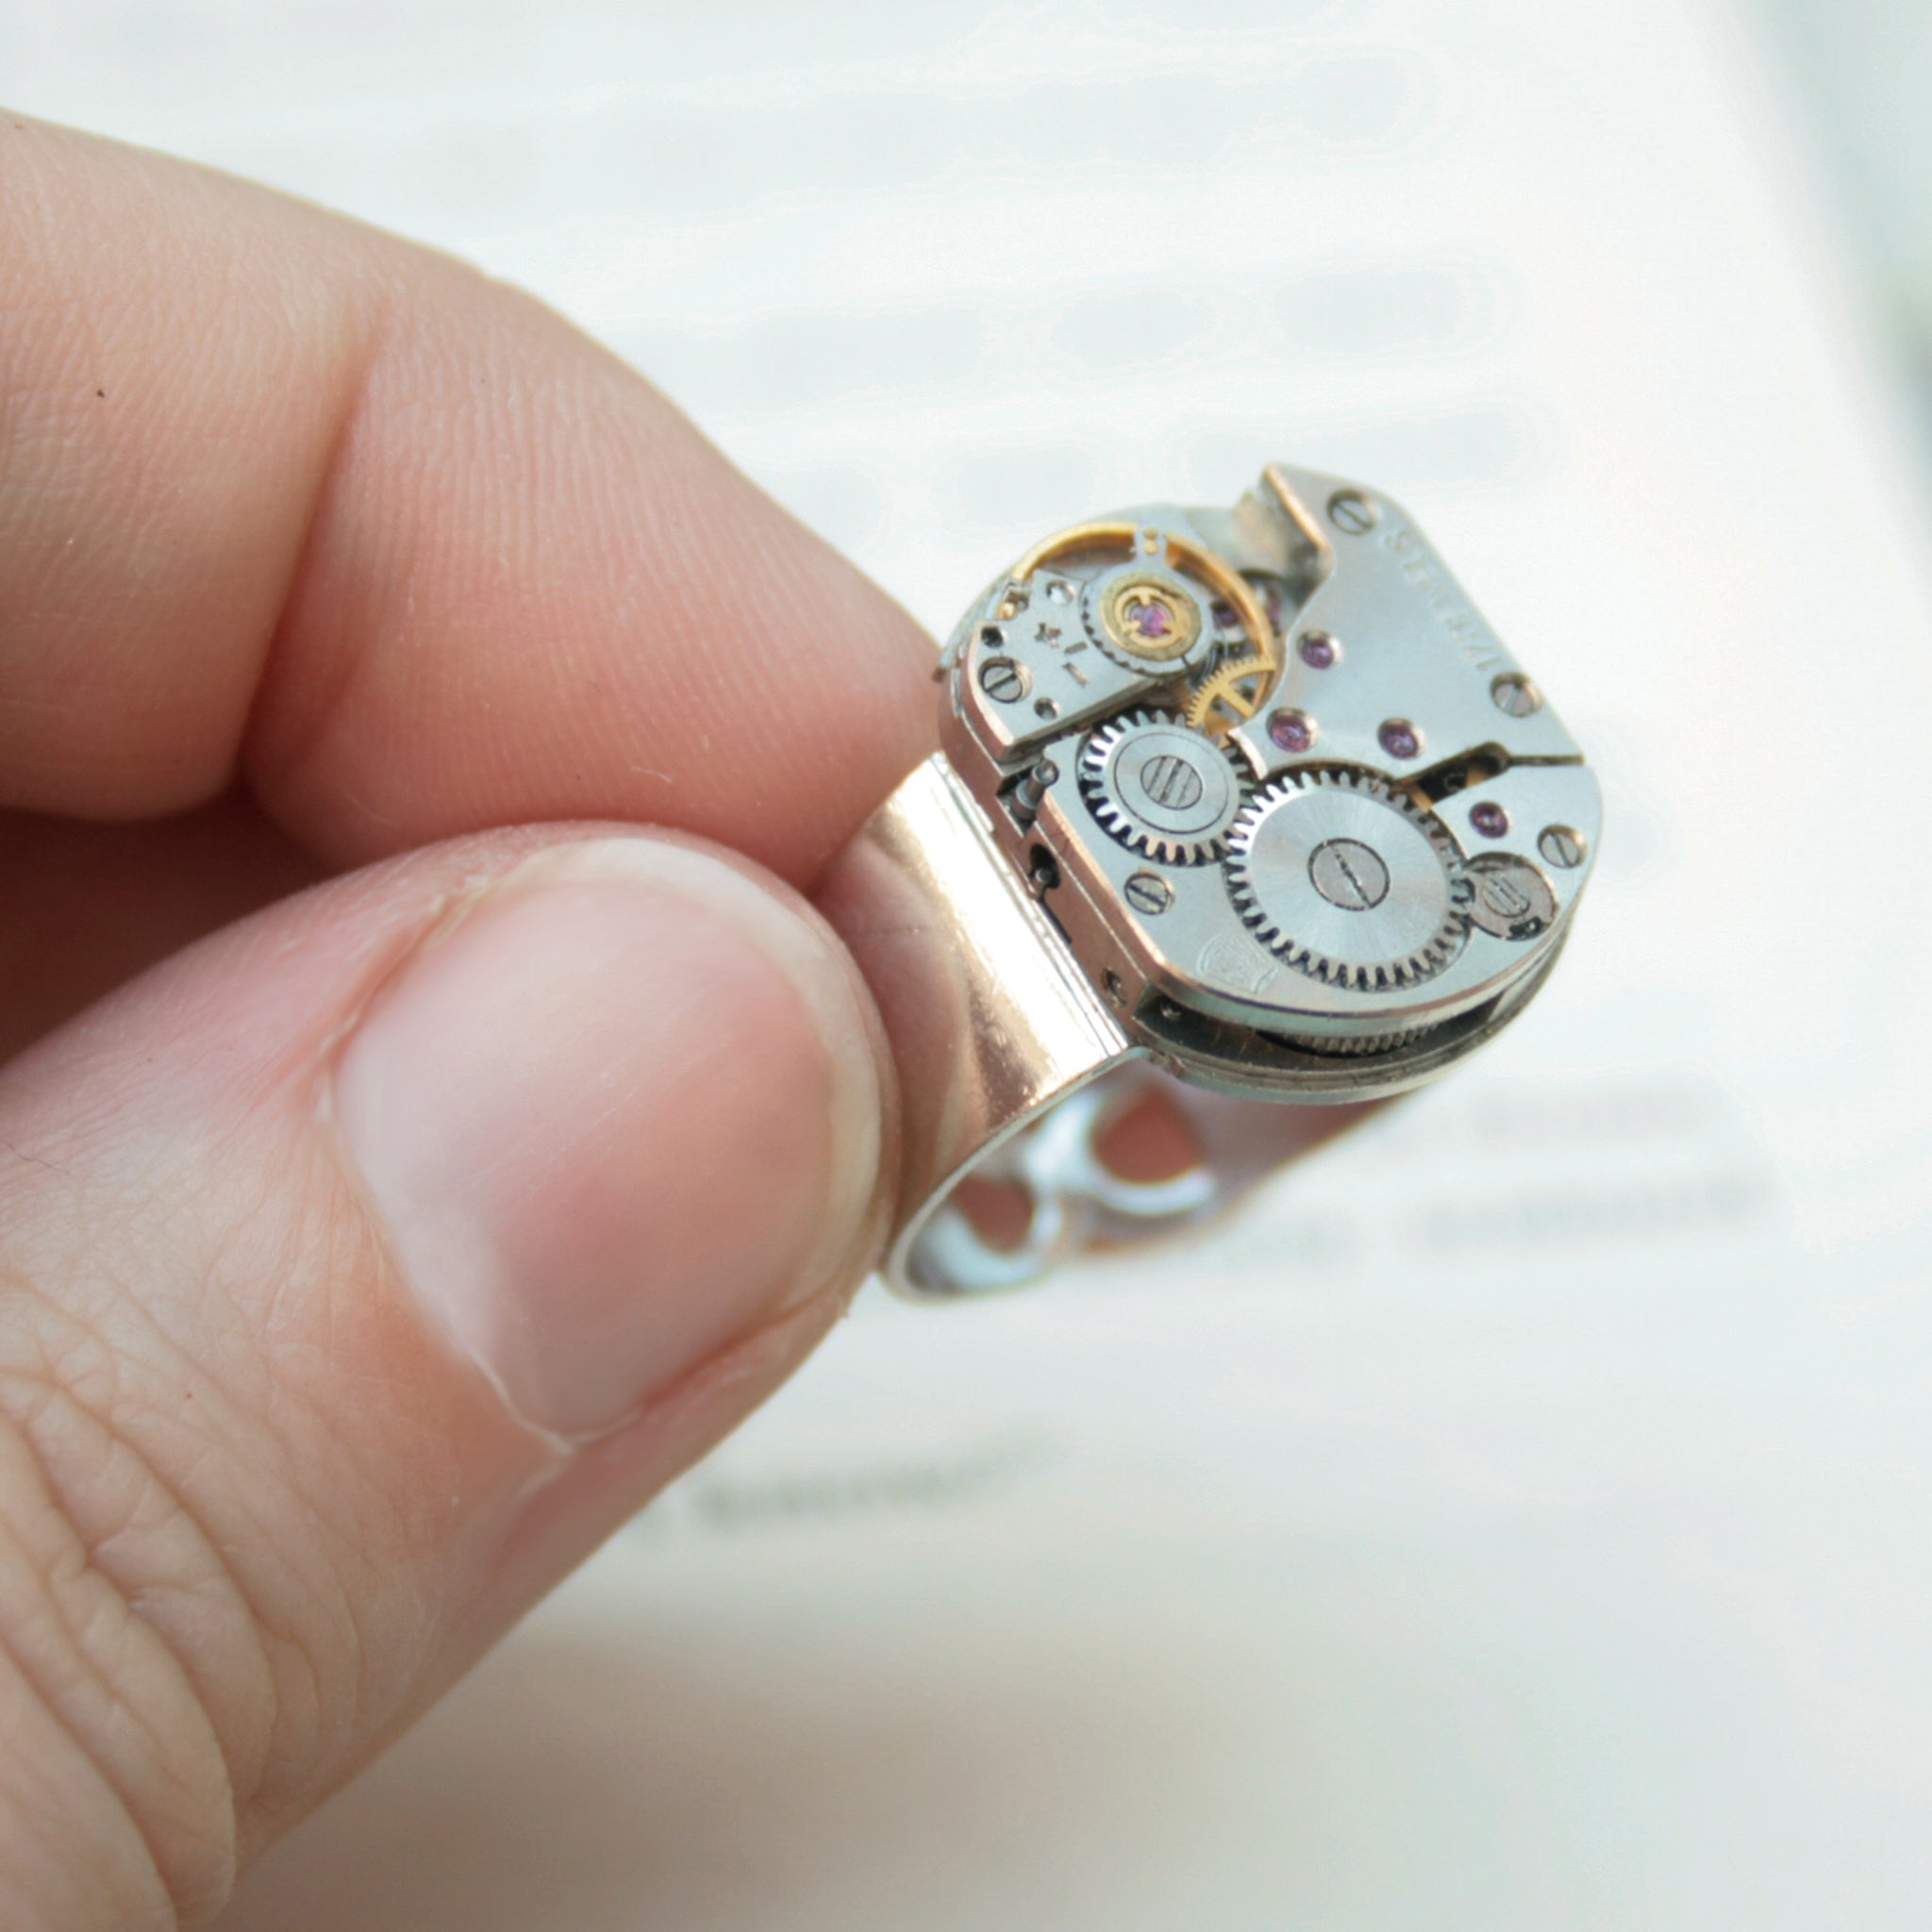 Mens Pinky Ring in Steampunk Style made of watch movement in silver color being hold in hand